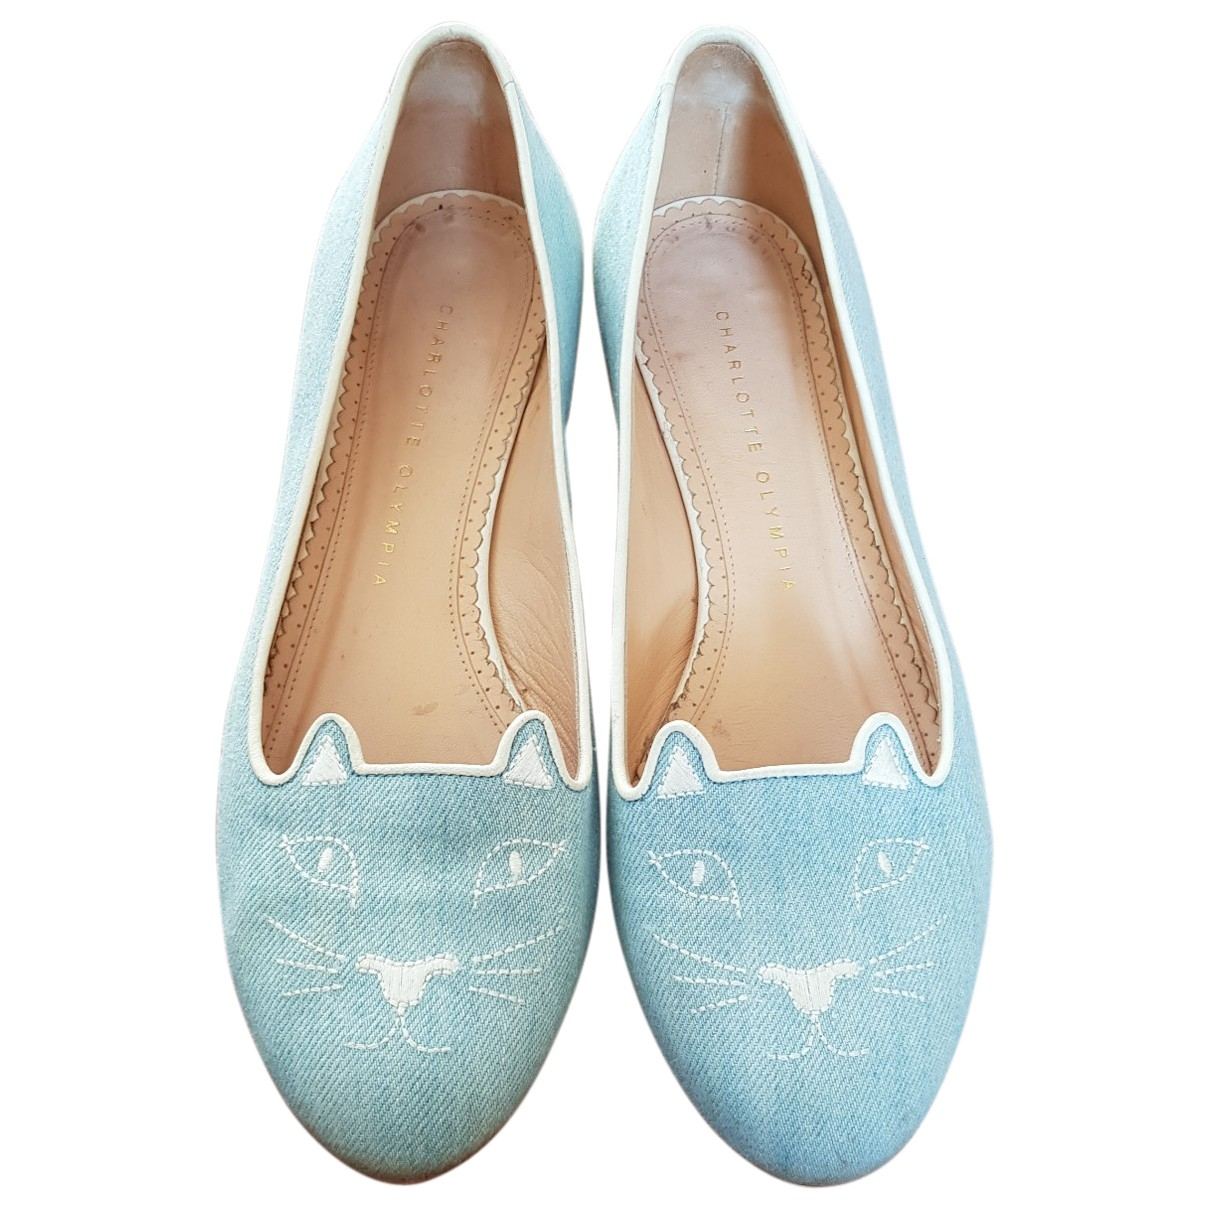 Charlotte Olympia \N Blue Cloth Flats for Women 38 EU